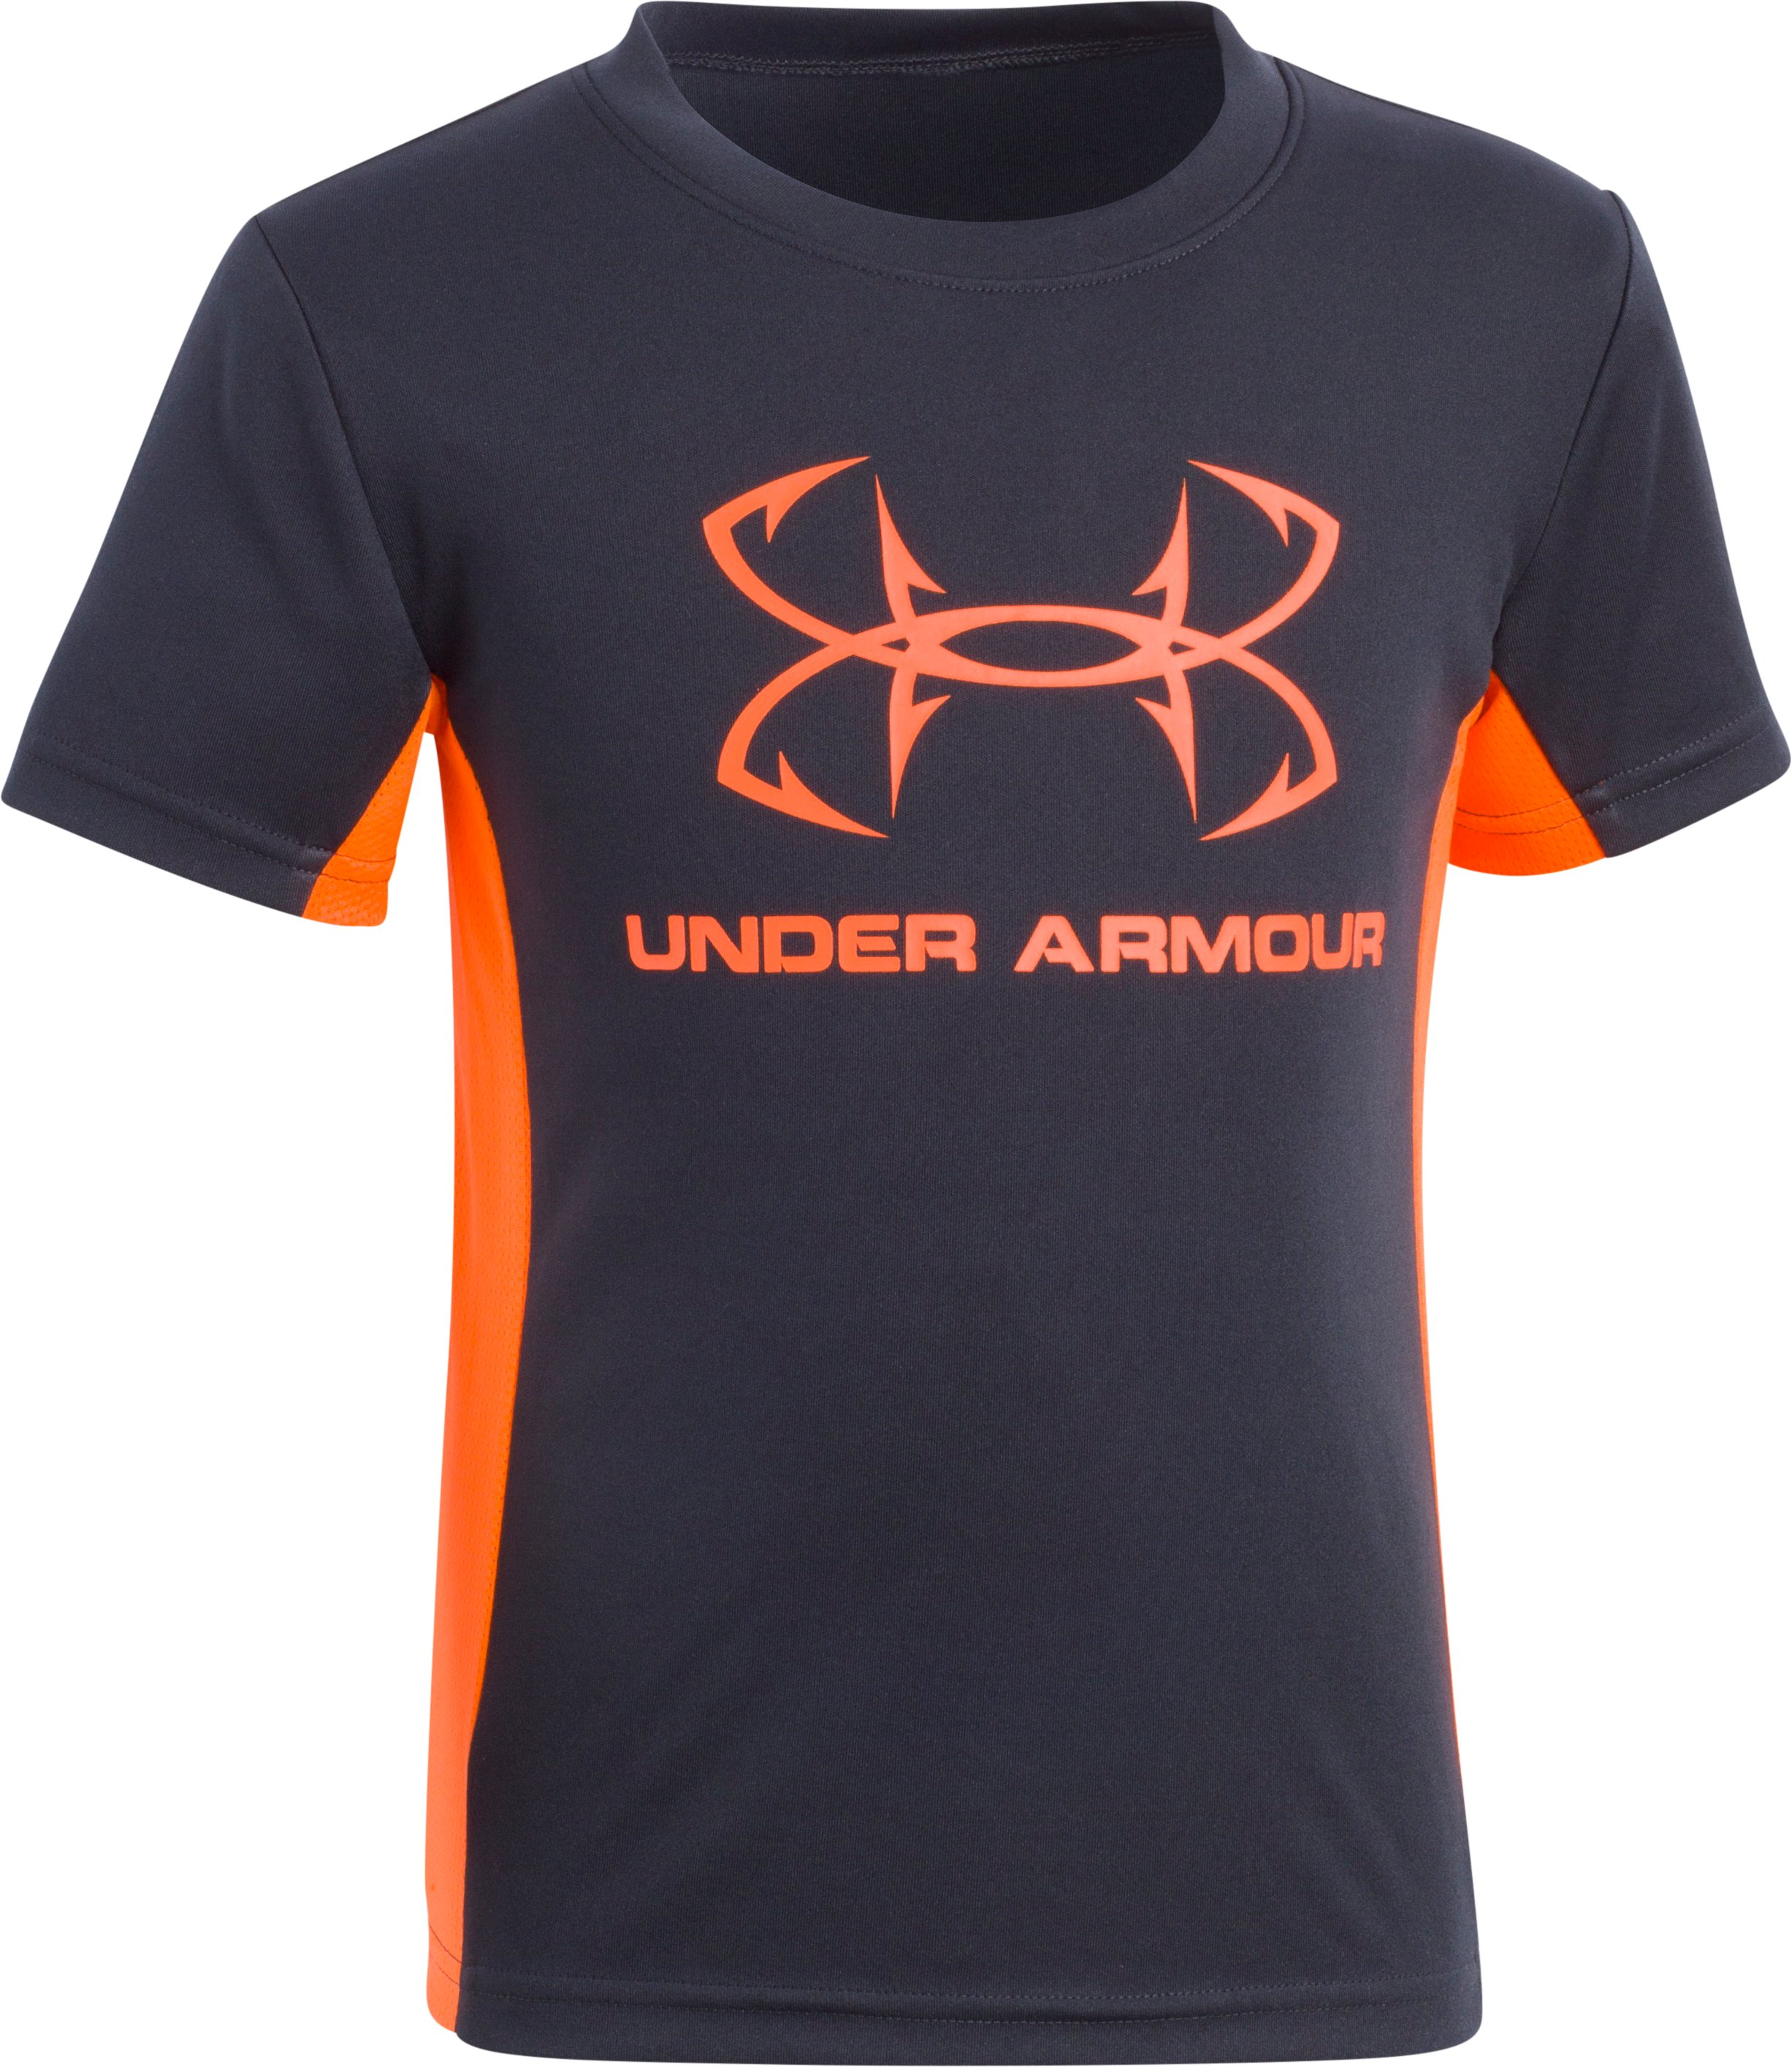 Boys' Pre-School UA Hook Logo Tech T-Shirt, ANTHRACITE